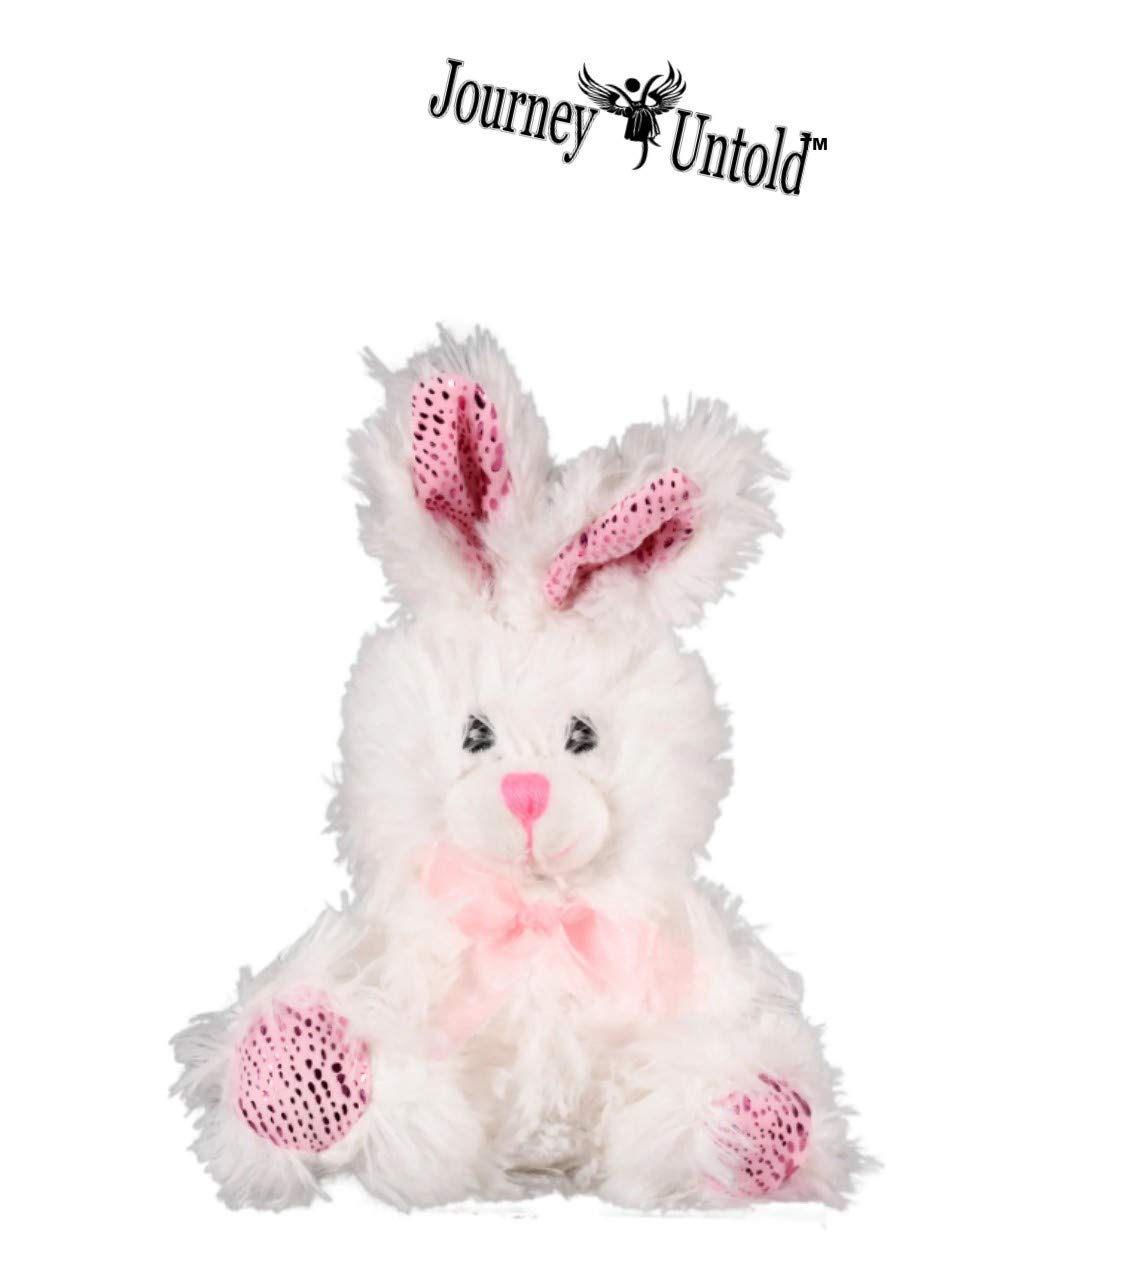 Kids Girls Boys Girl Toddlers Gift Egg Toddler Gifts Themed Decorations Toys Stuffers White Scented Bear Bonus ROZALYN Clip BCL Happy Easter Baskets